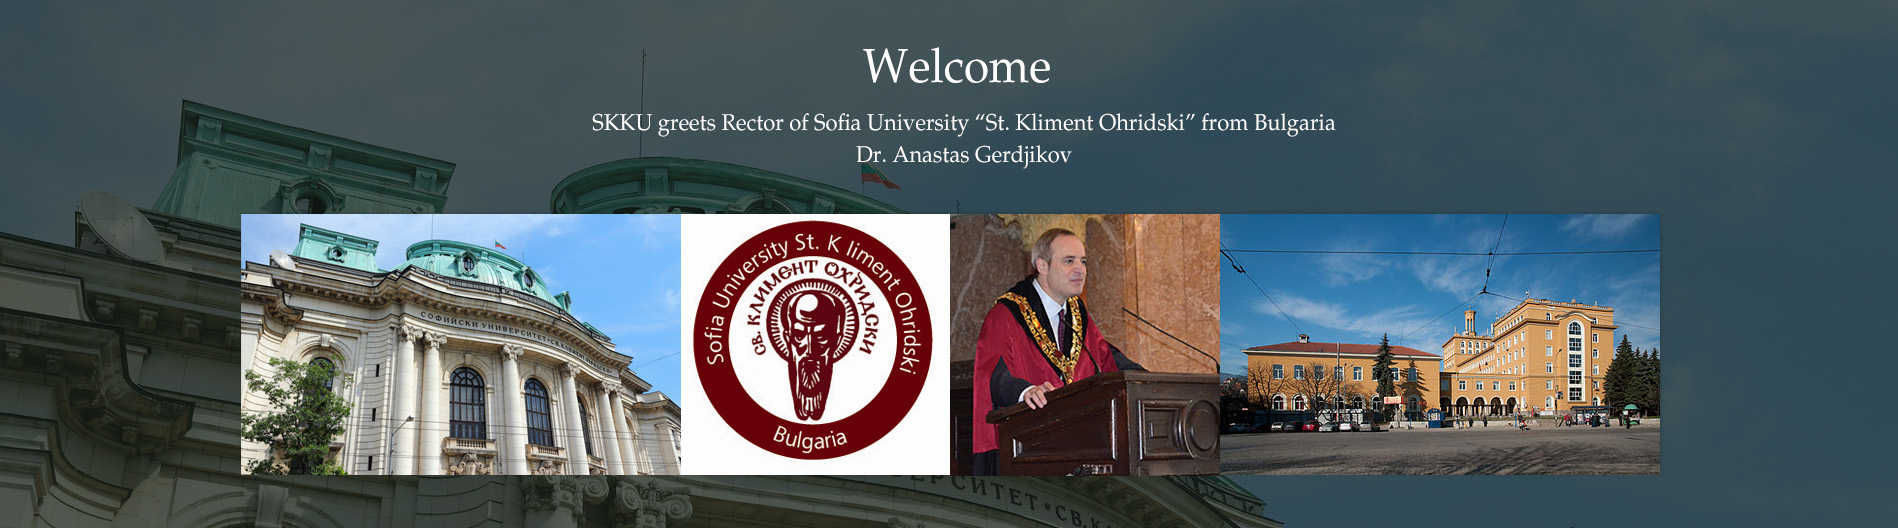 SKKU greets Rector of Sofia University